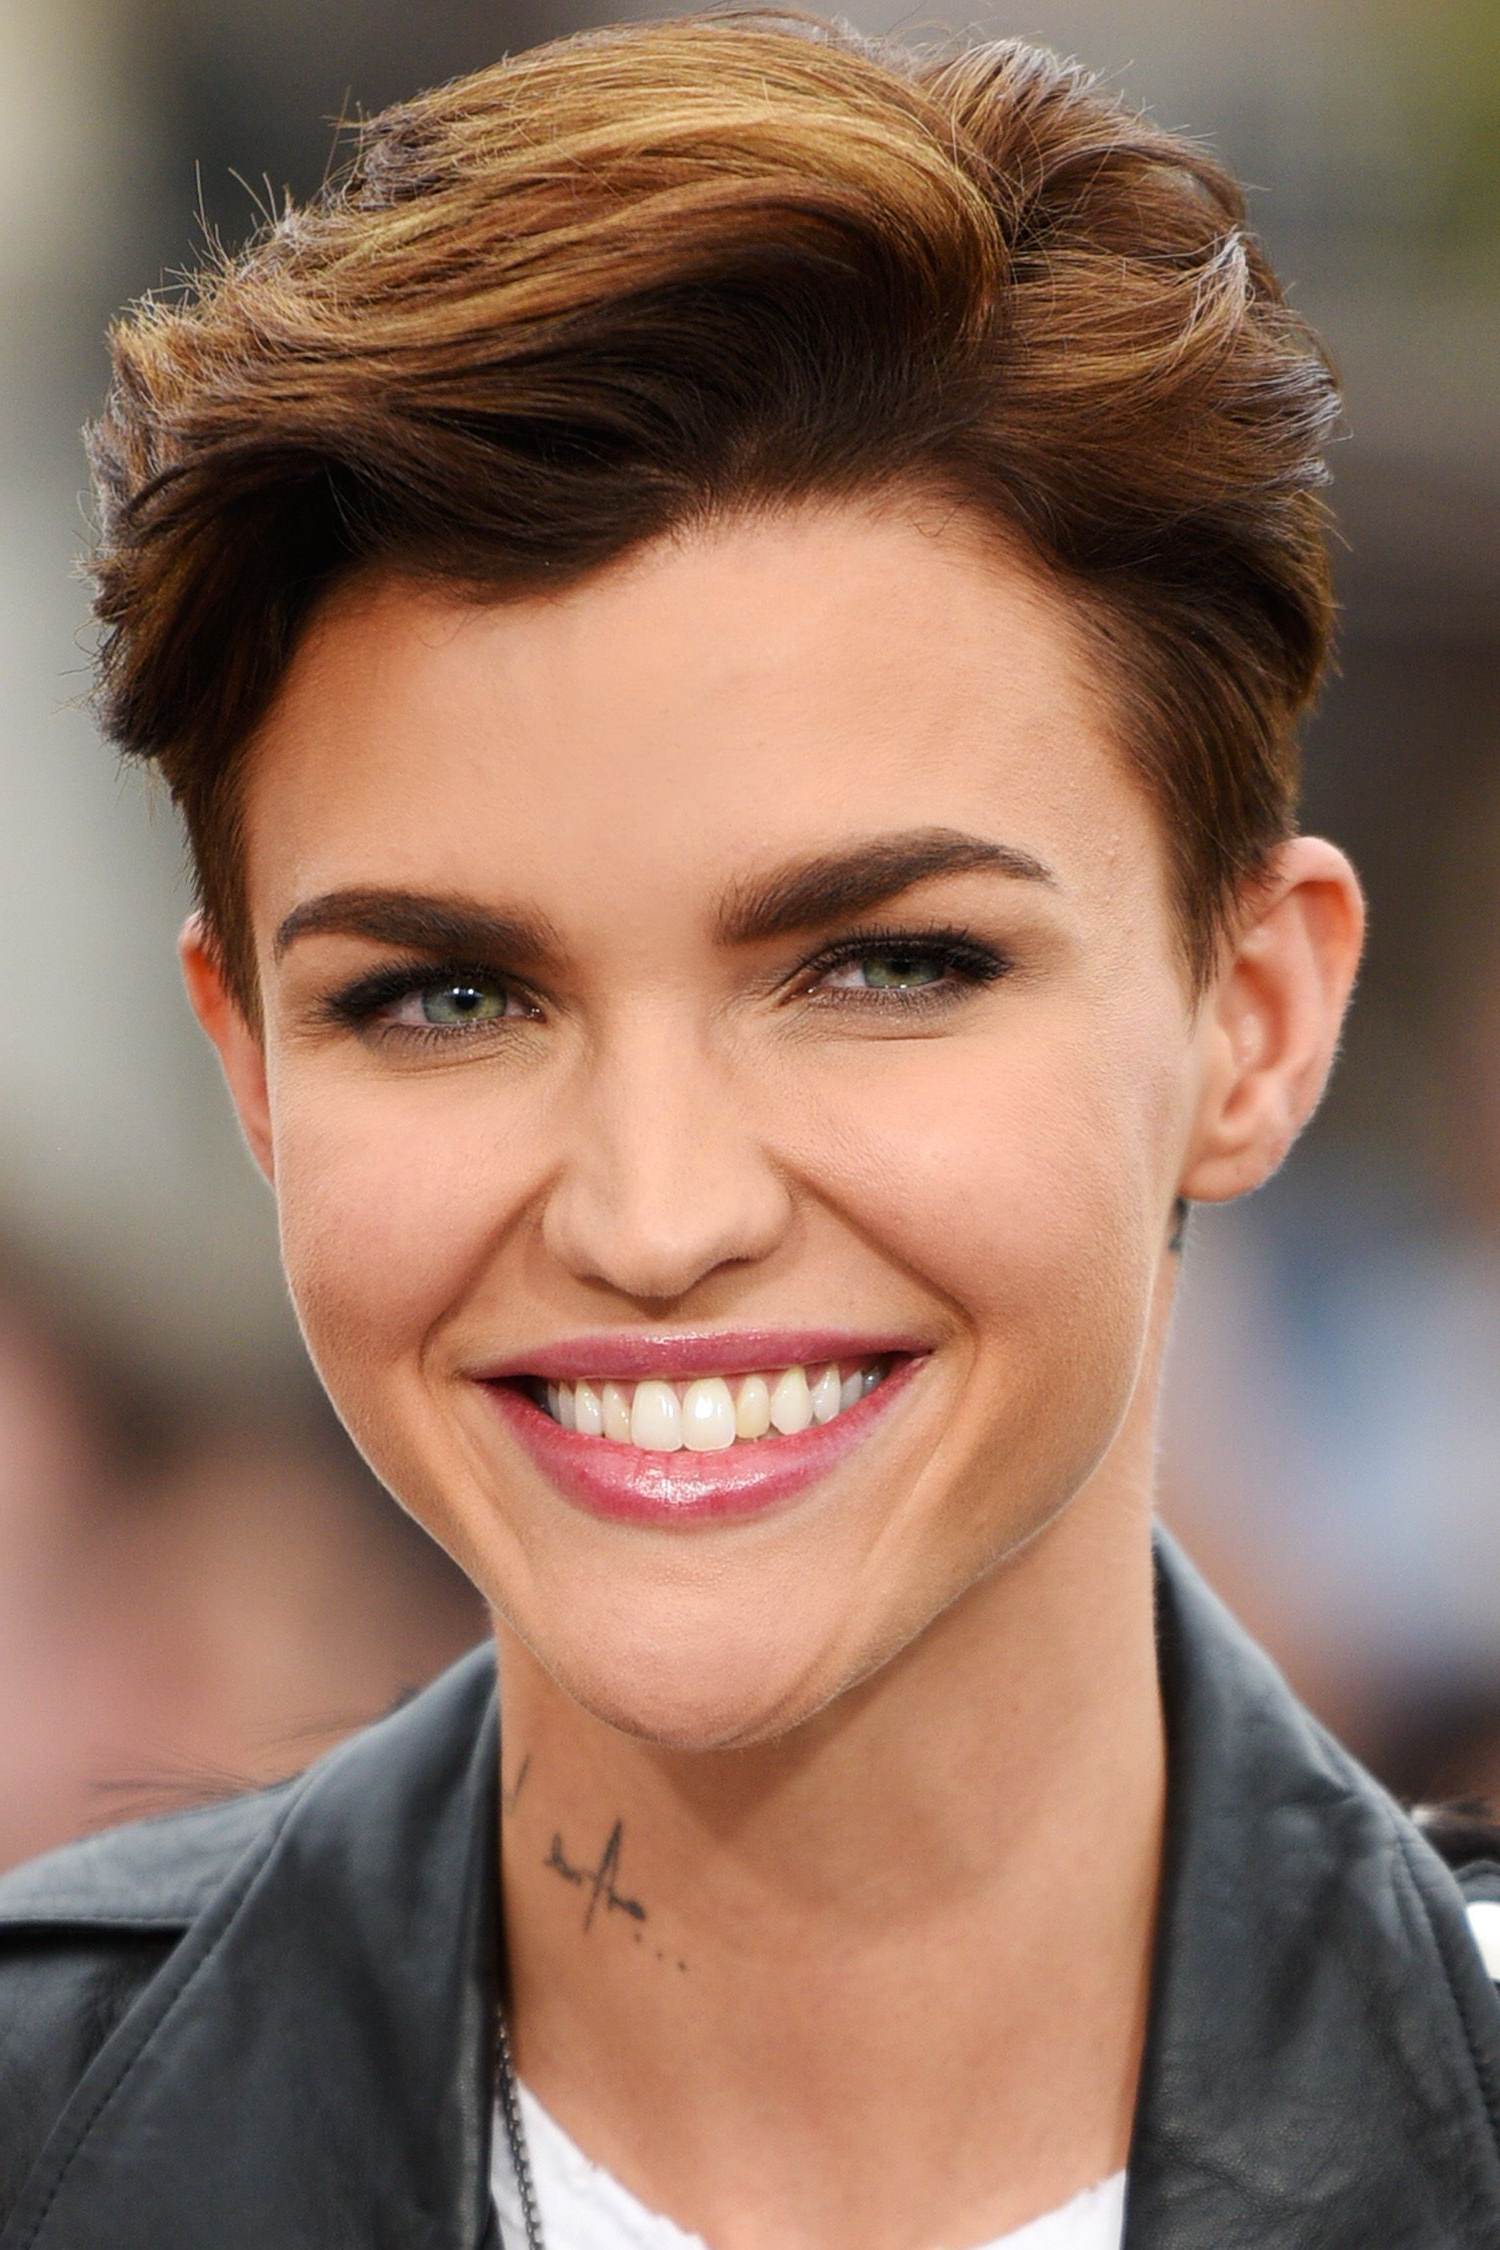 The Top Pixie Haircuts Of All Time | Pixie Haircuts | Pinterest Intended For Ruby Rose Short Hairstyles (View 4 of 25)